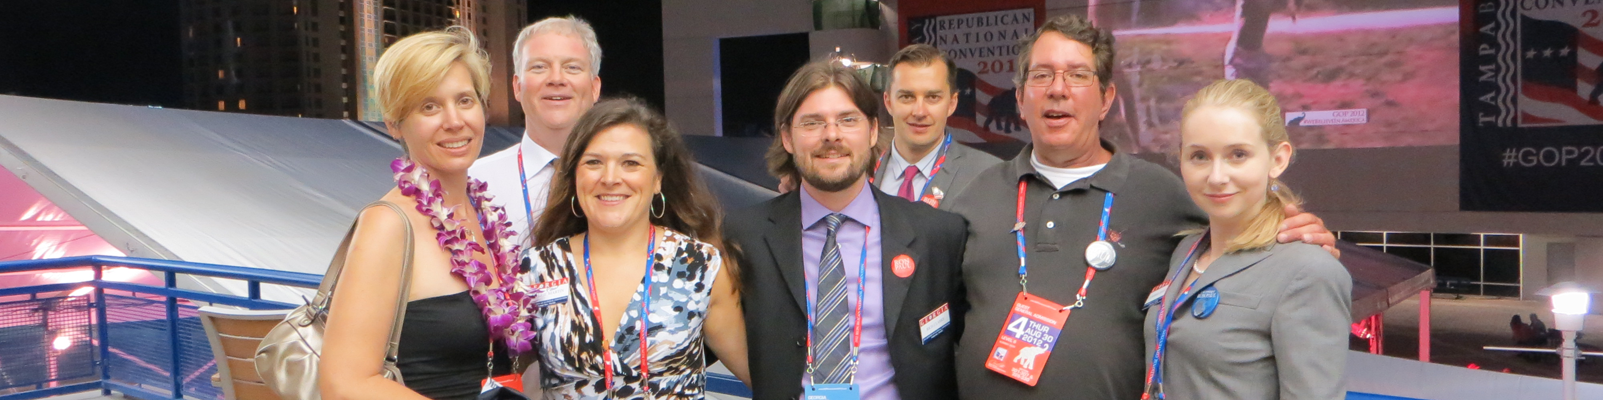 Tampa Republican National Convention 2012